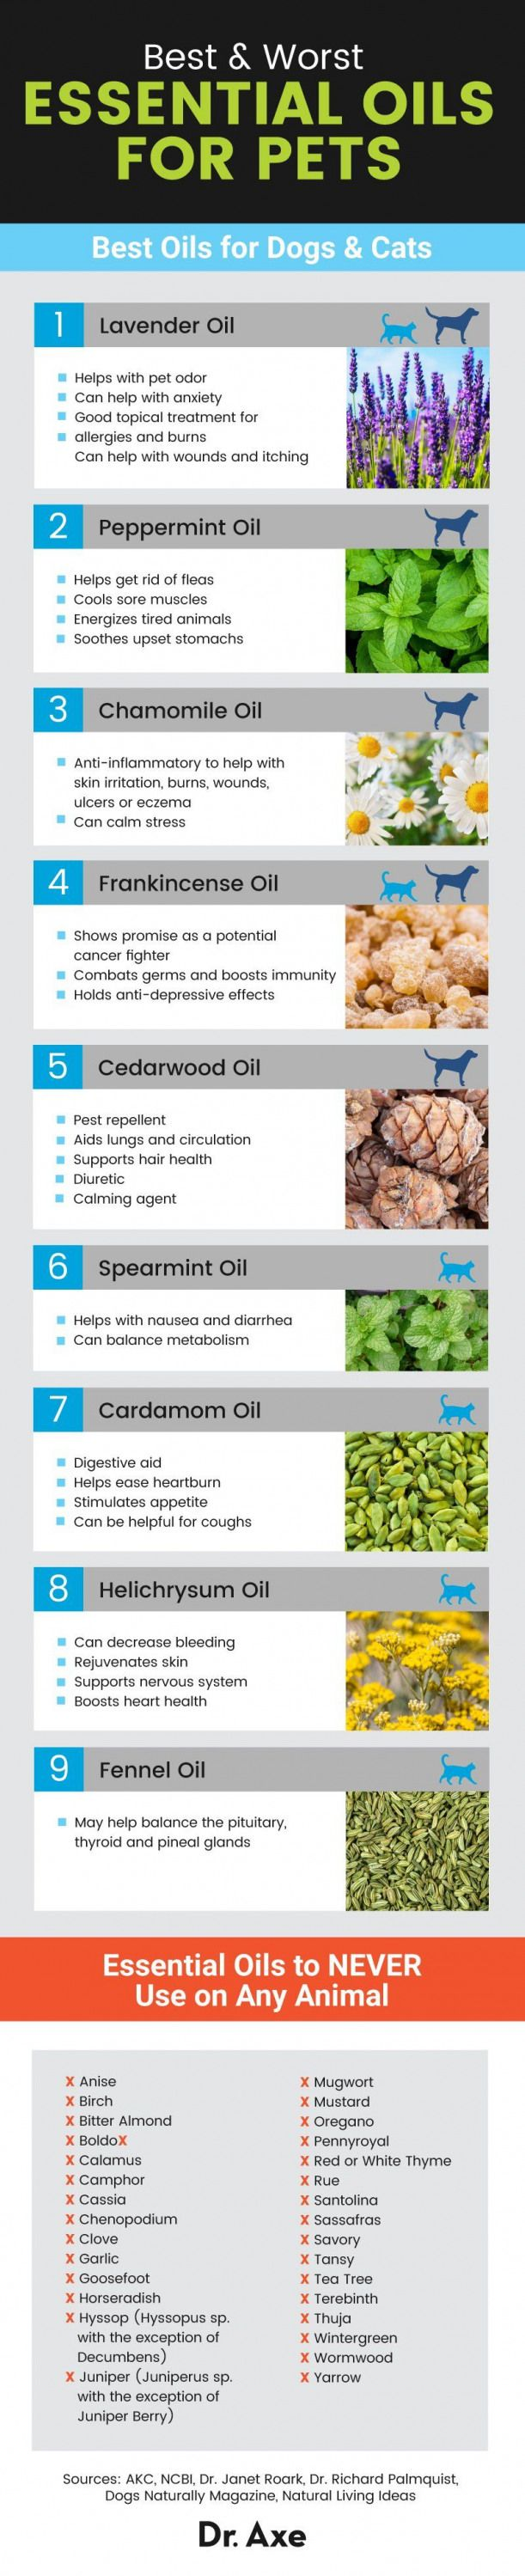 Essential Oils for Pets The Best  Worst Oils to Use  Dr Axe